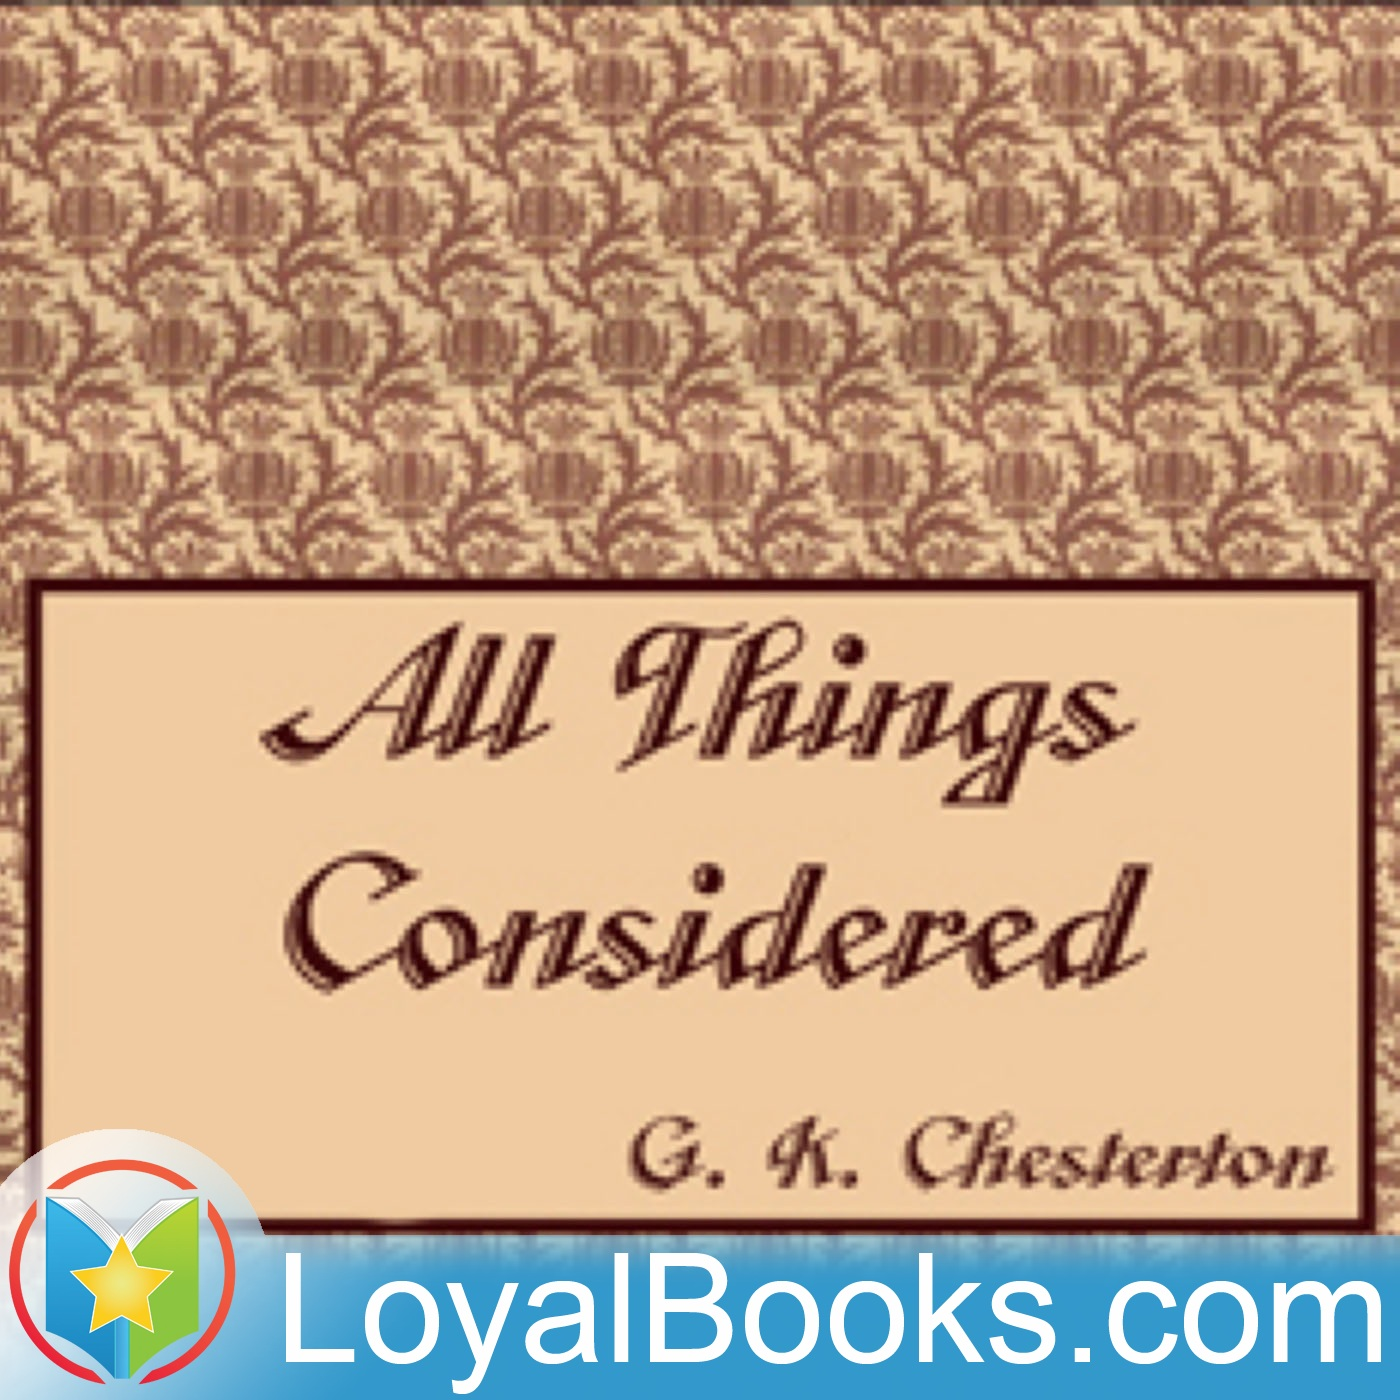 <![CDATA[All Things Considered by G. K. Chesterton]]>